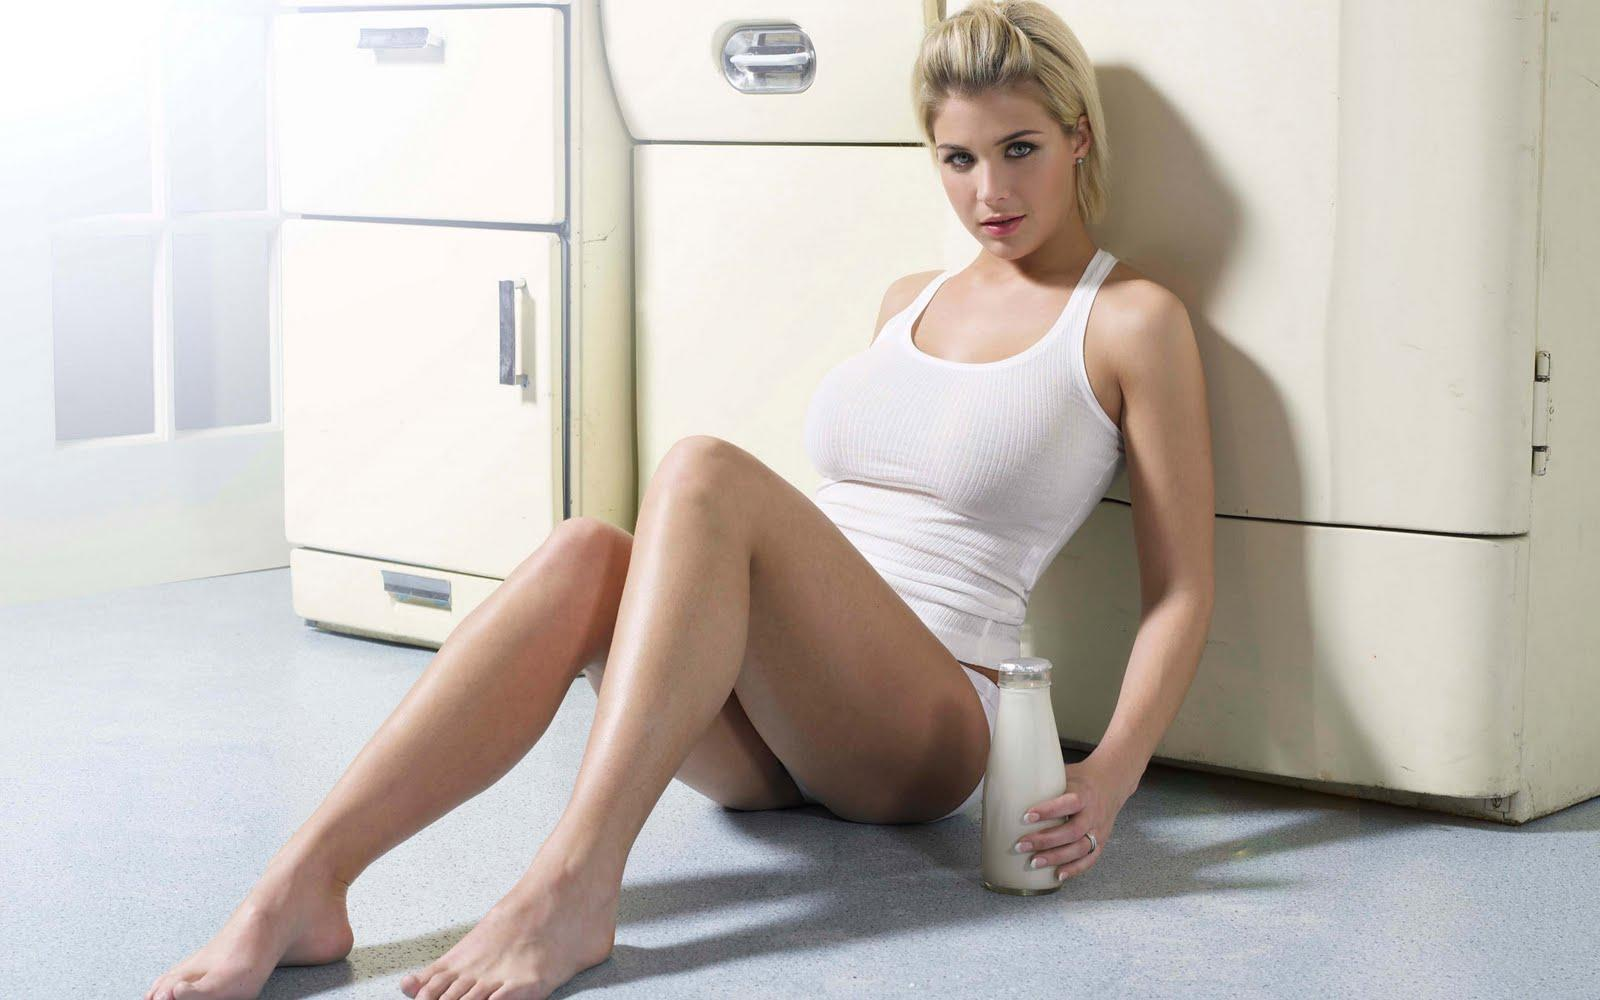 Gemma Atkinson Wallpapers : World Top Best HD Desktop Wallpapers